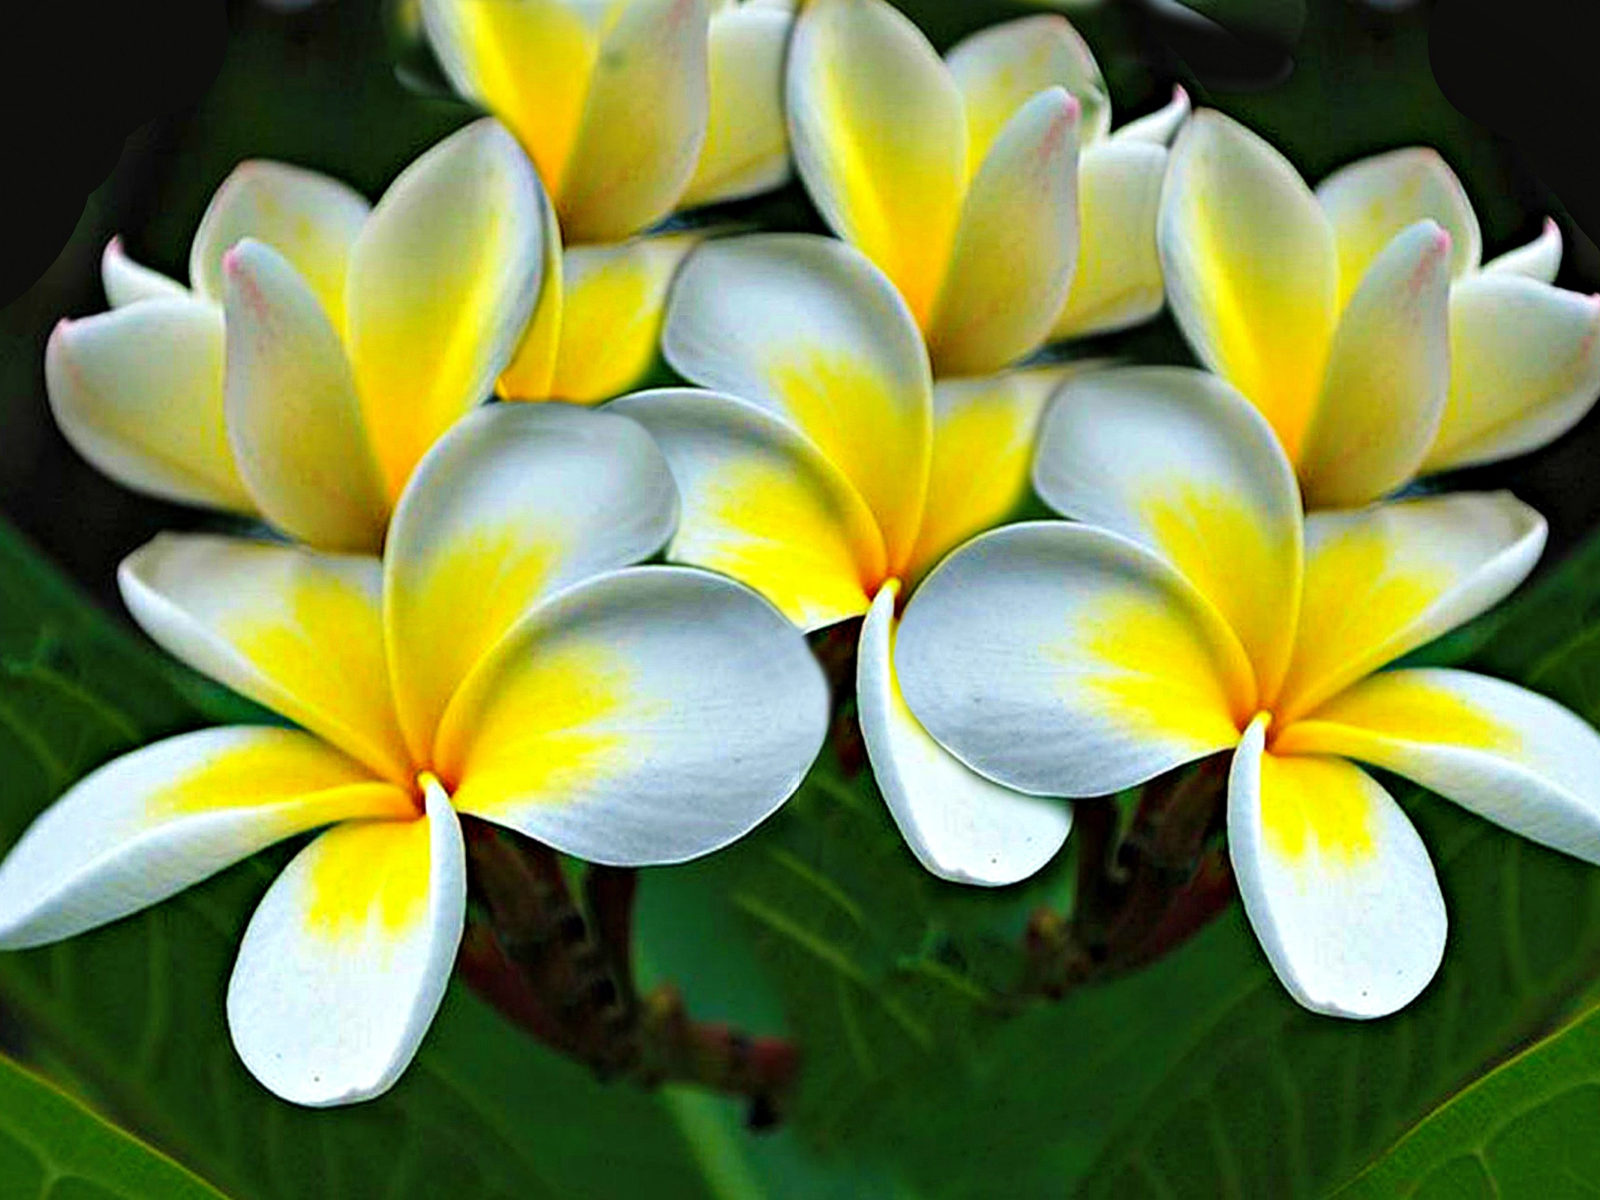 Purple Wallpaper For Iphone 5 Plumeria Flowers Yellow White Hd Wallpaper 1571